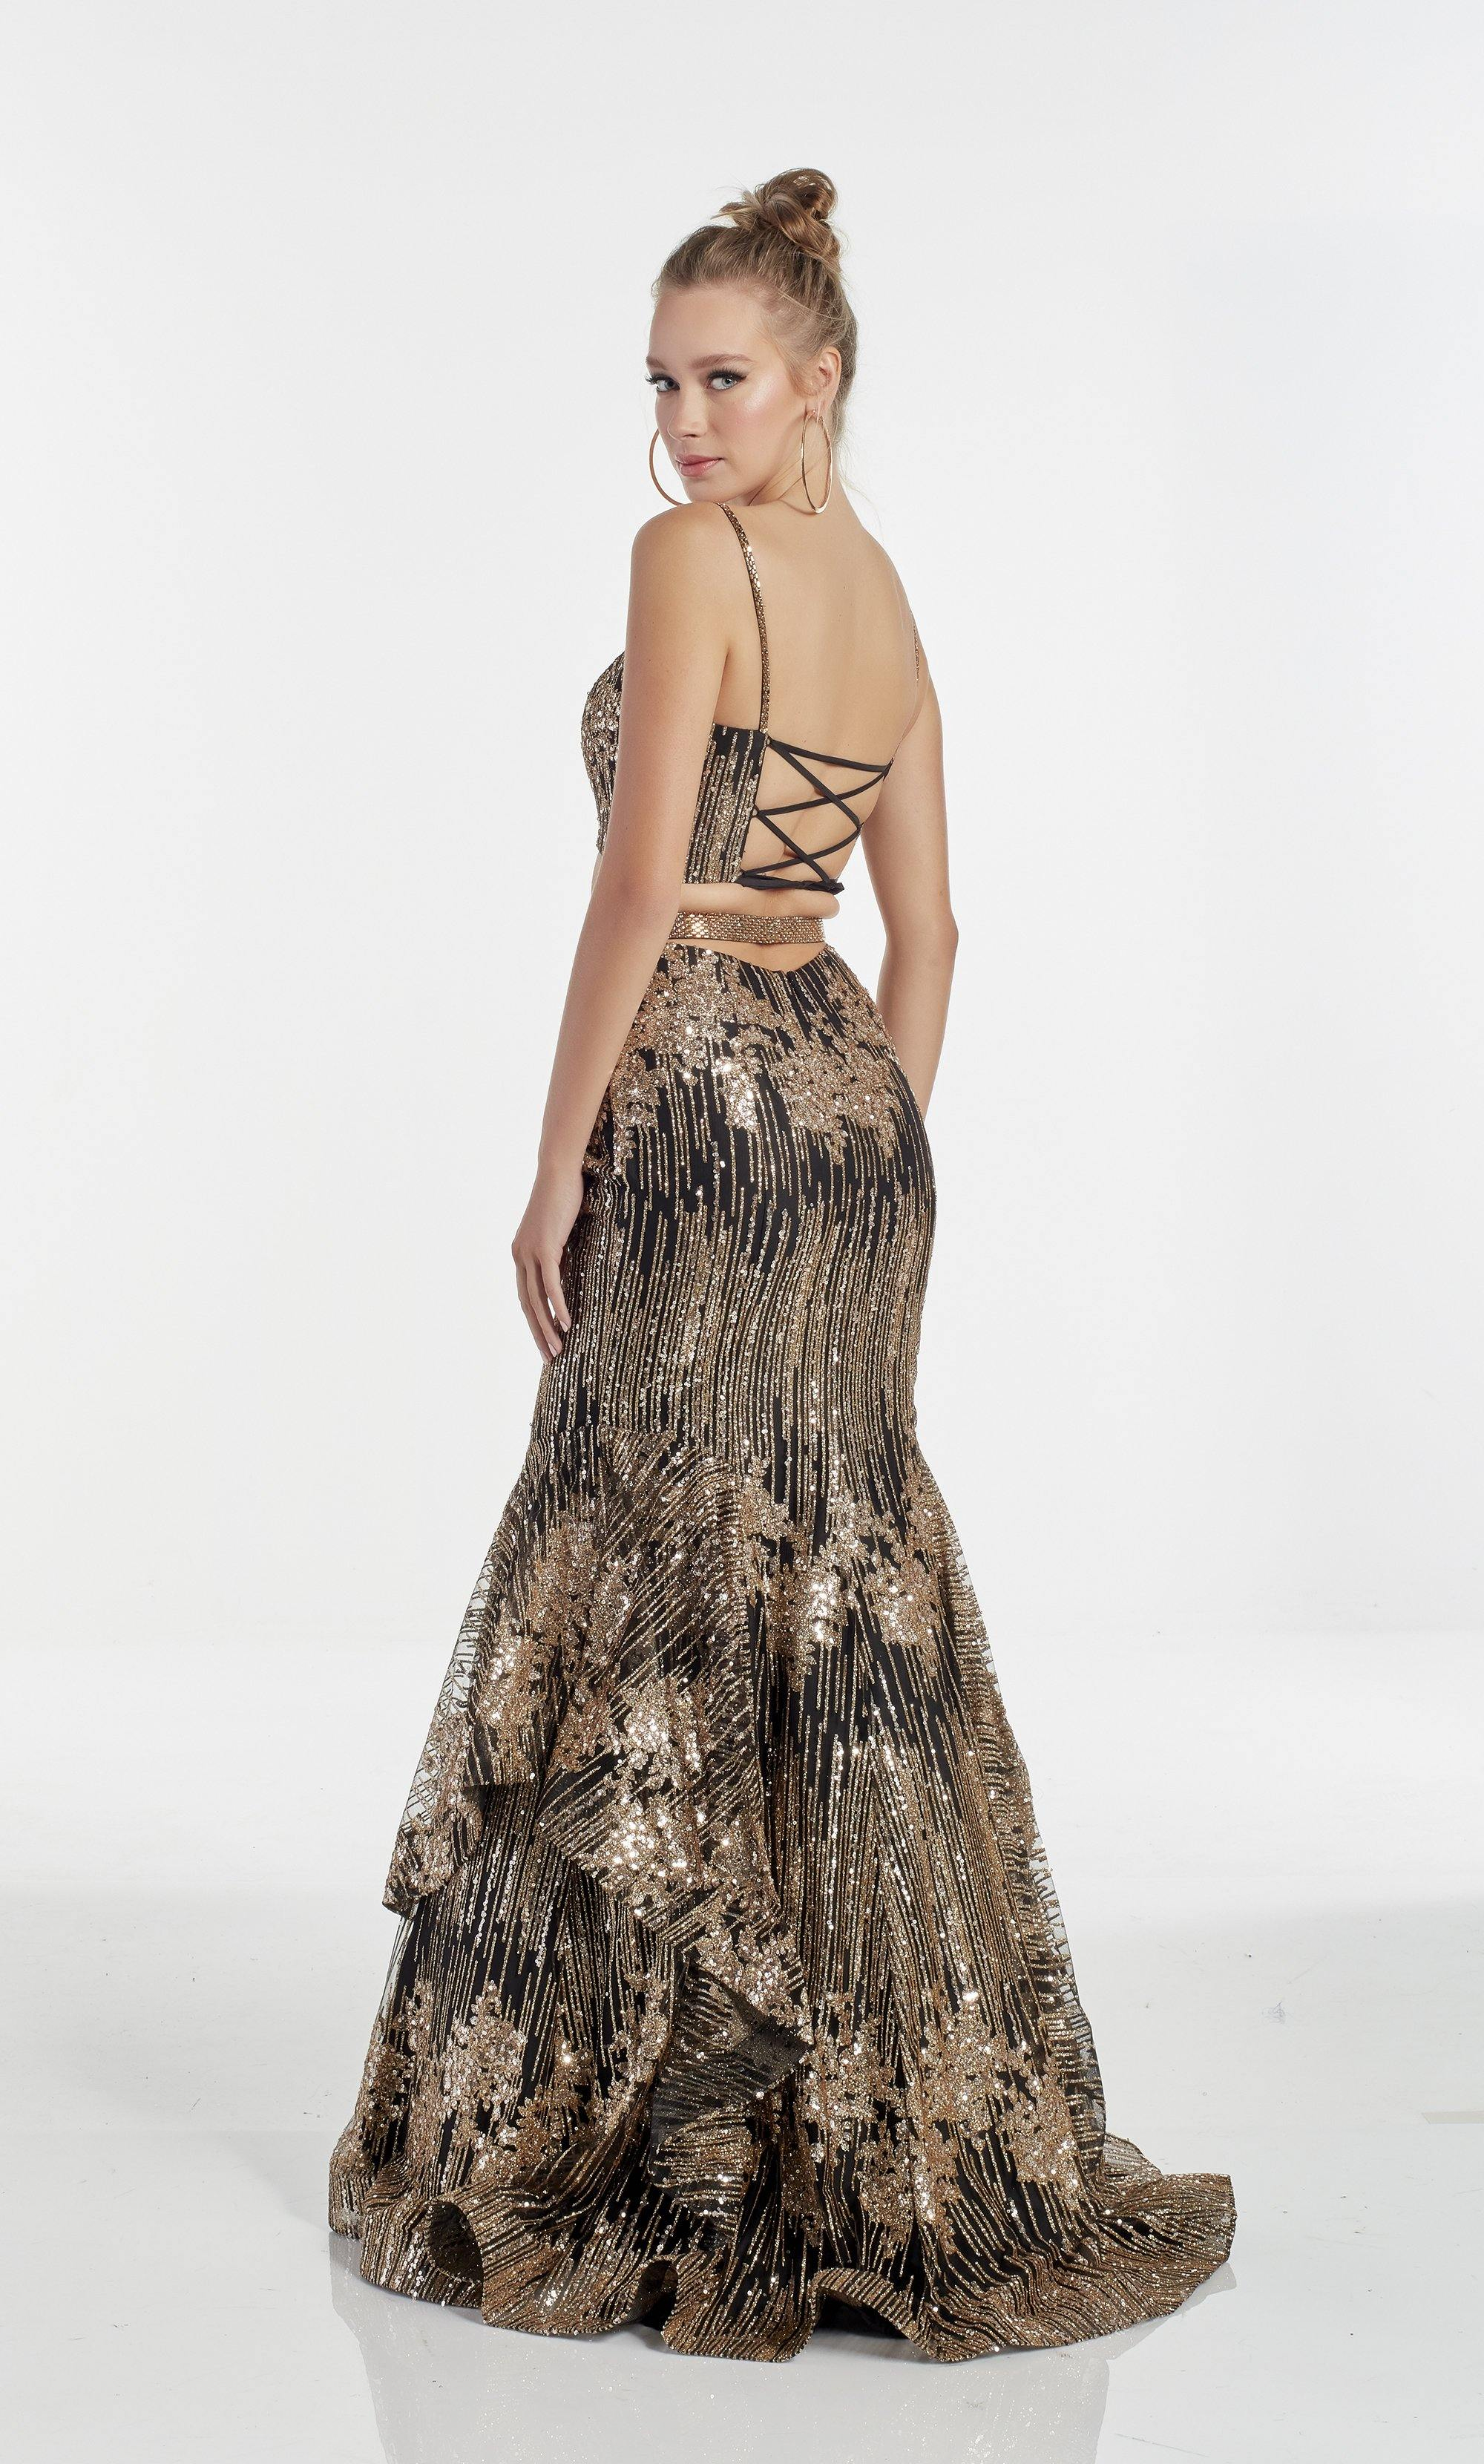 Black-Gold fully sequin embellished two piece mermaid prom dress with a square neck and layered skirt